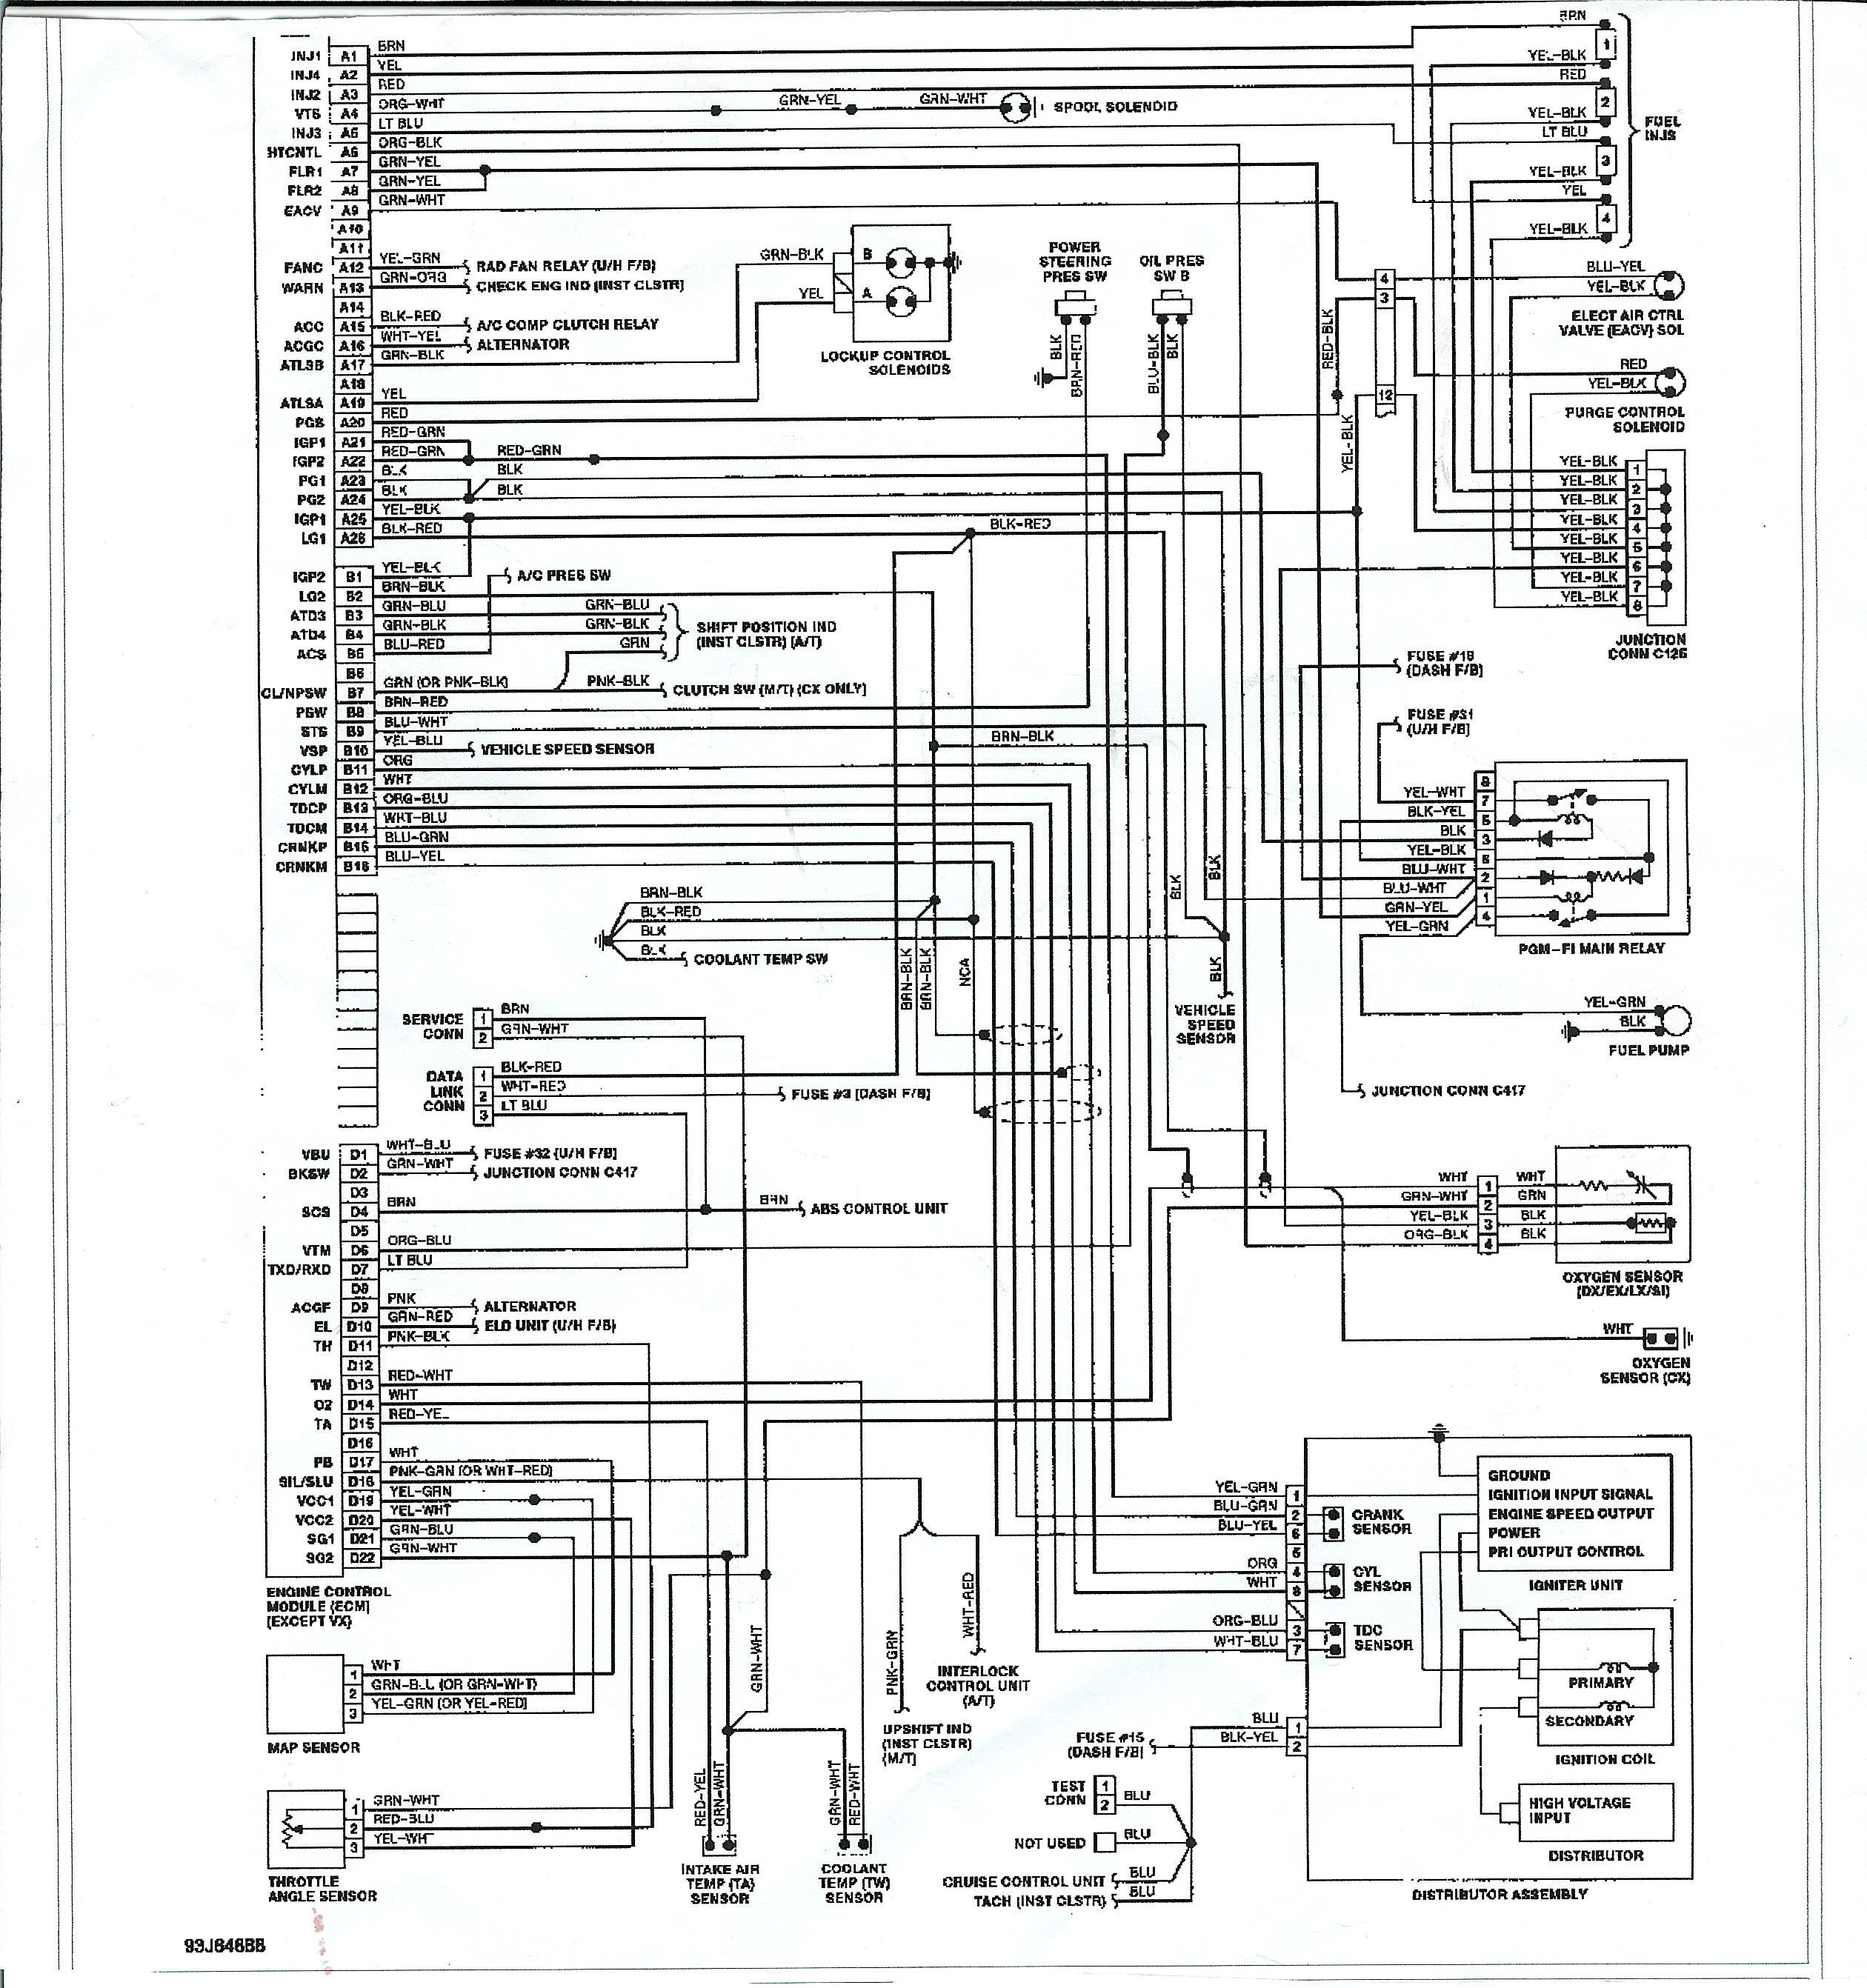 Wiring Diagram Honda Accord 2008